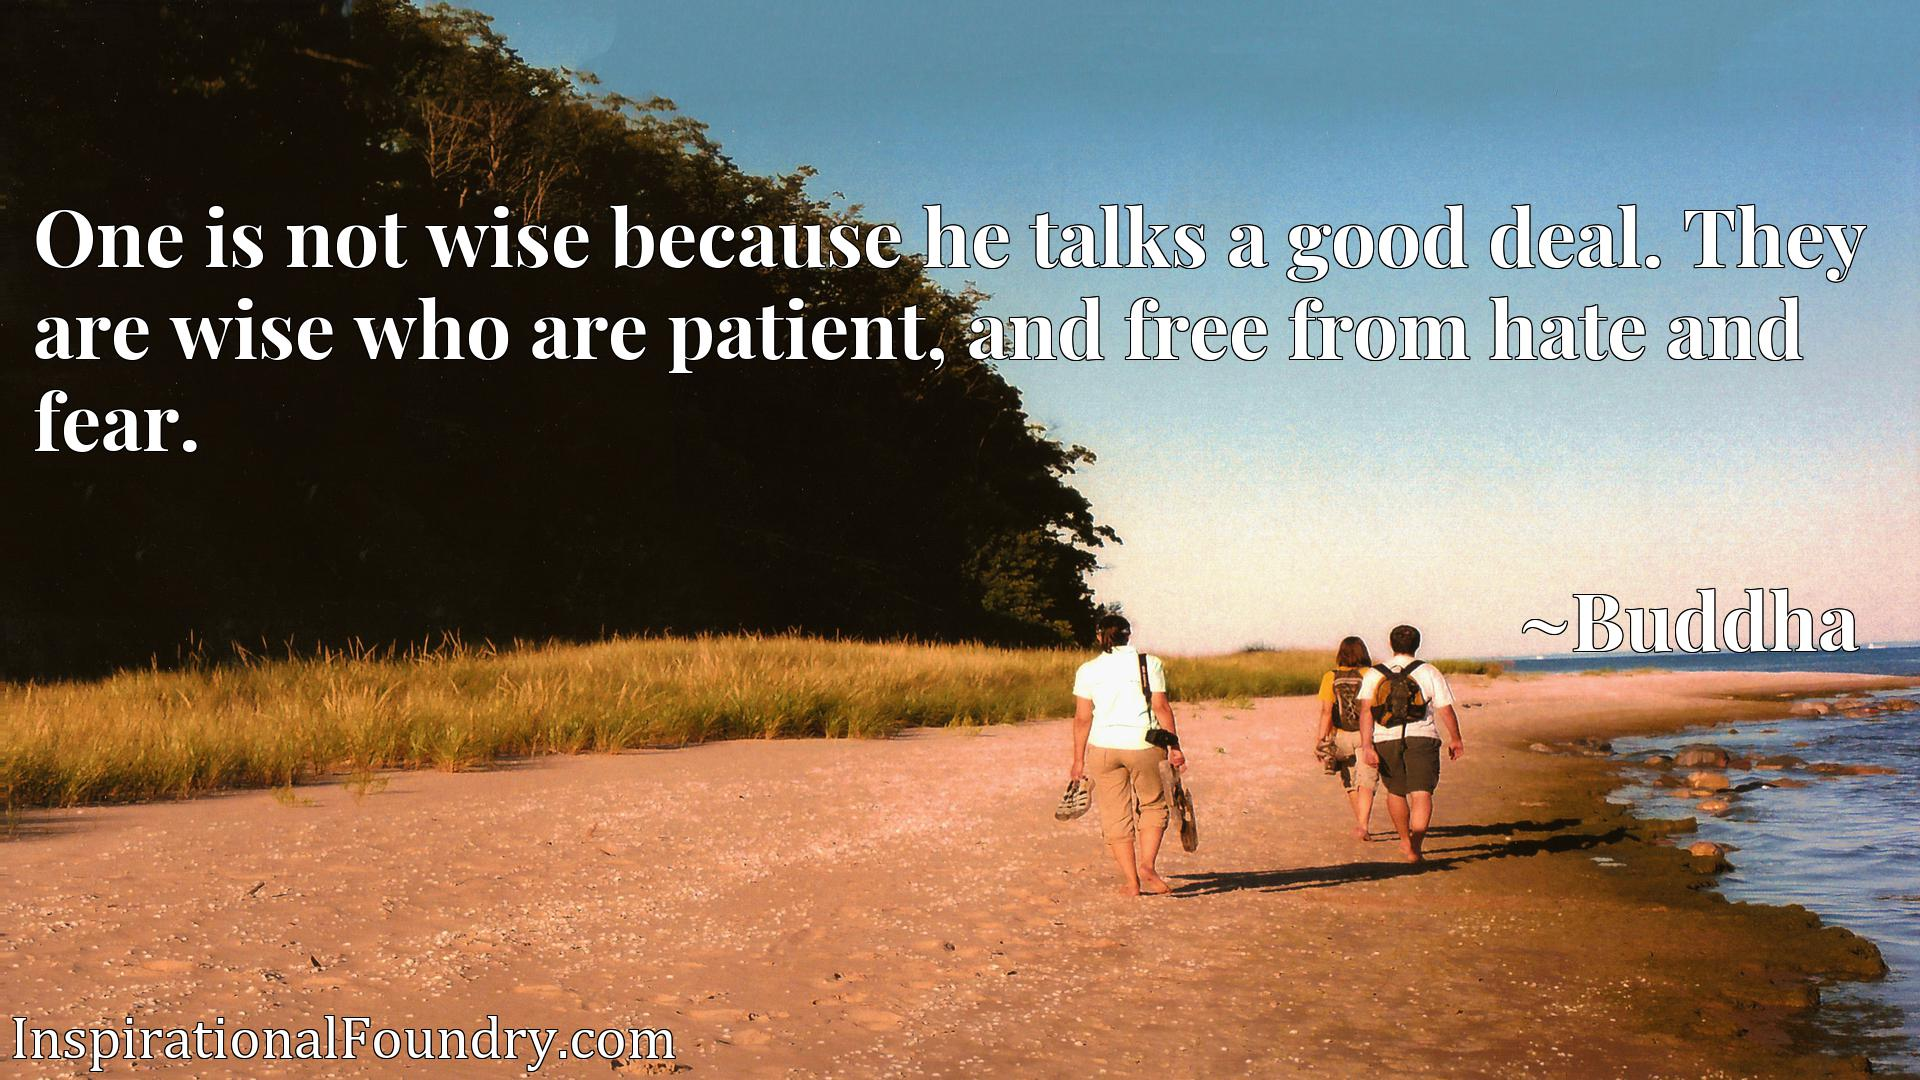 One is not wise because he talks a good deal. They are wise who are patient, and free from hate and fear.